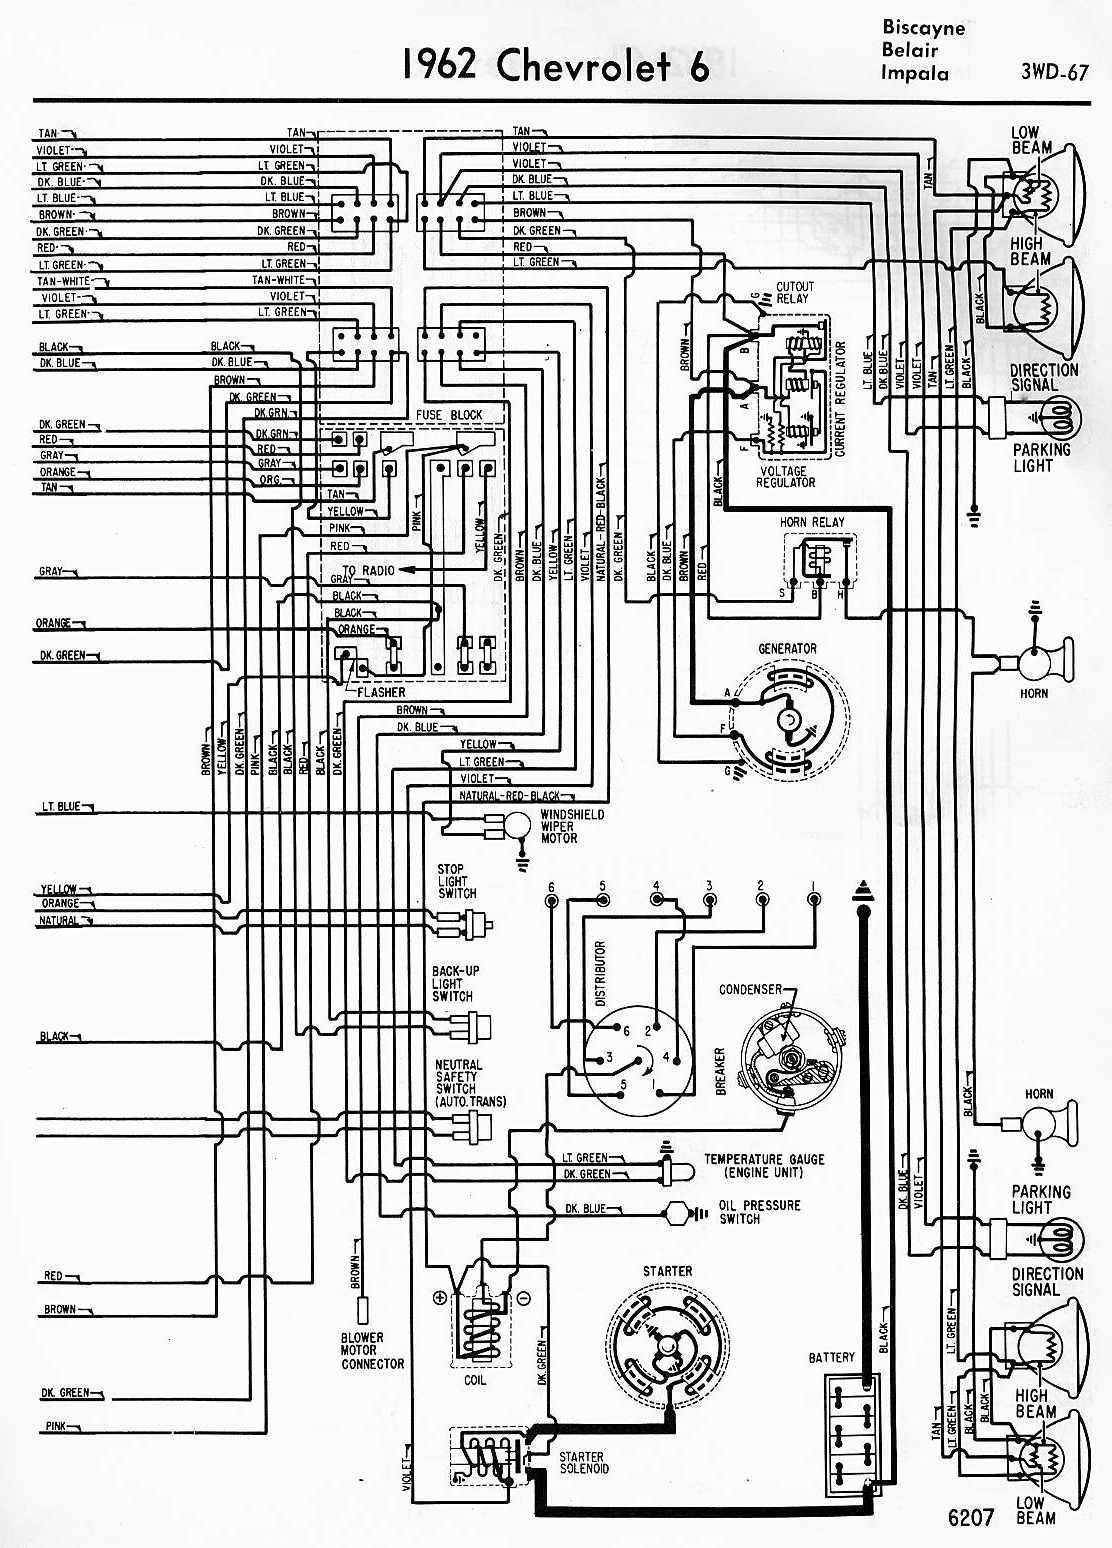 hot rod wiring diagrams chevy impala diagram trusted wiring diagram 07 impala wiring diagram 66 chevy [ 1112 x 1548 Pixel ]